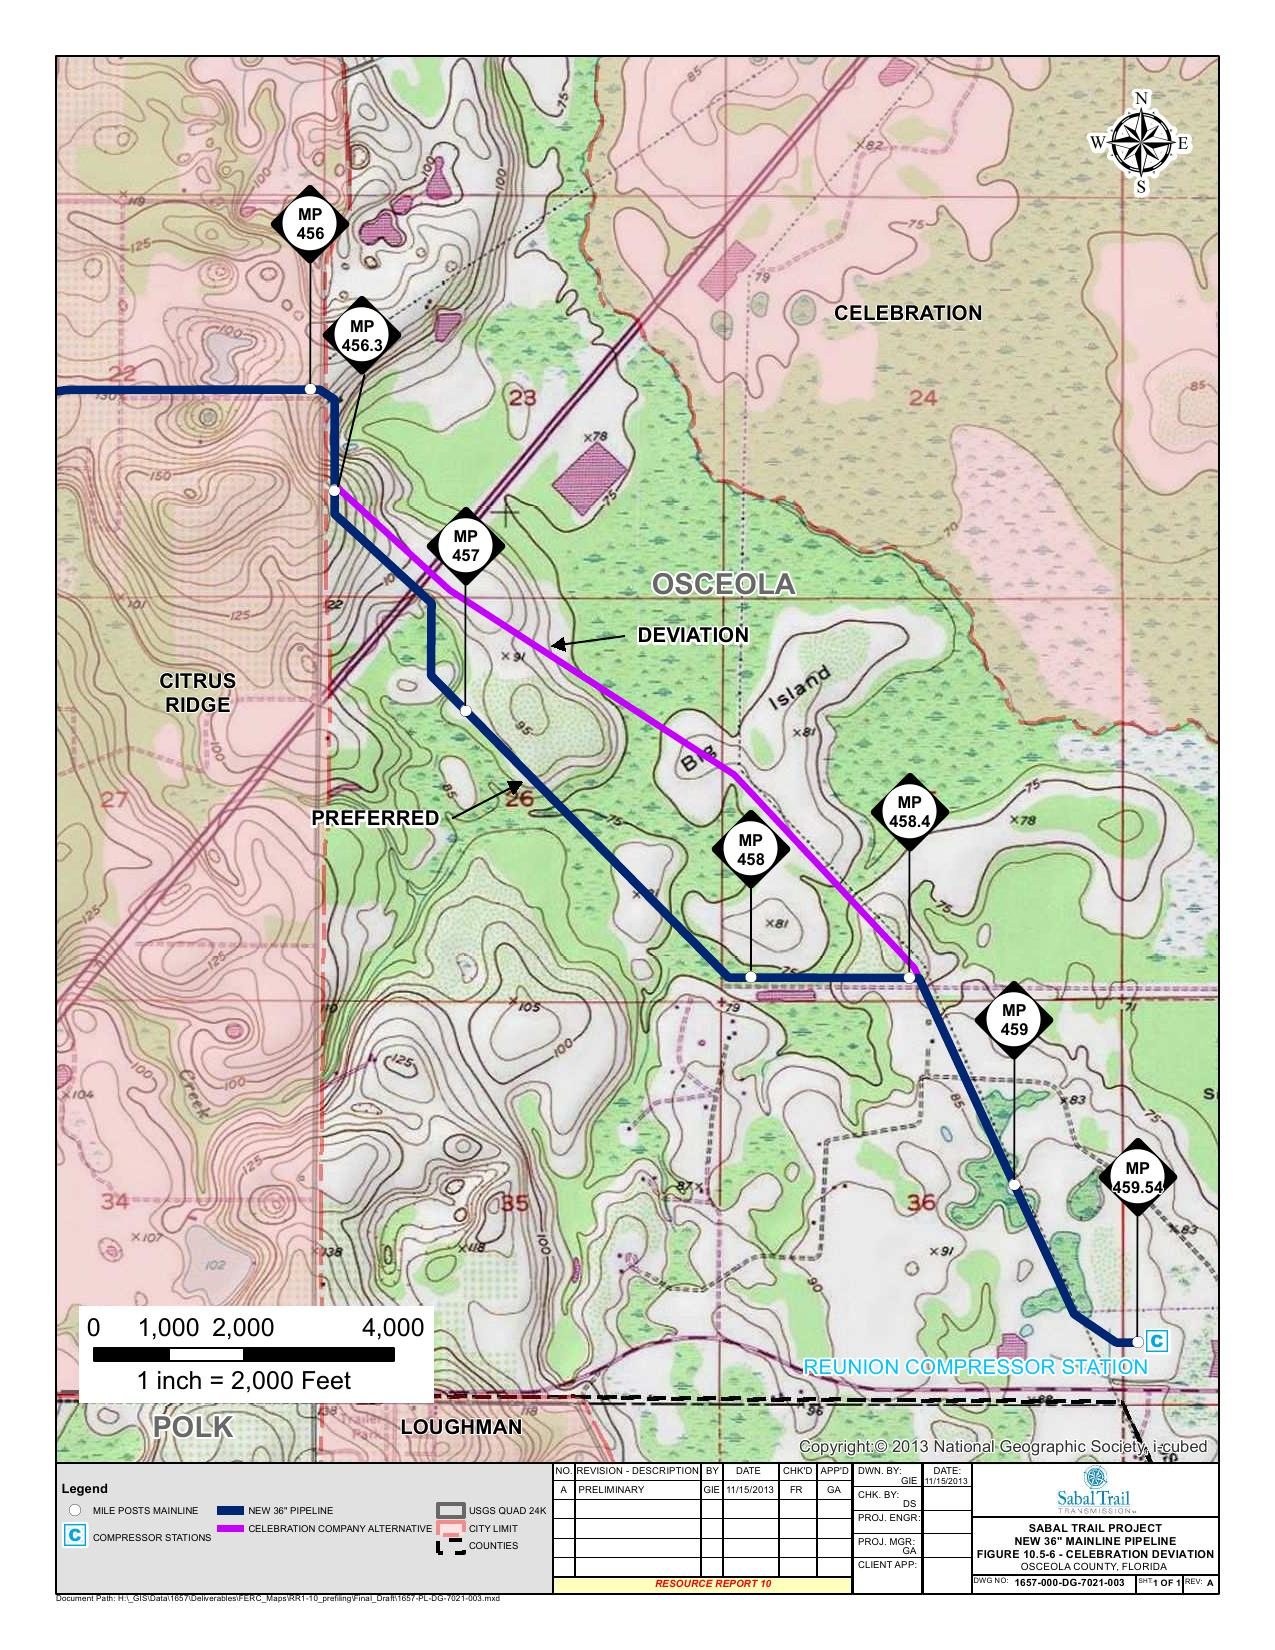 Celebration Deviation, Osceola County, Florida, in Alternatives, by Sabal Trail Transmission, for FERC Docket No. PF14-1-000, 15 November 2013, converted by SpectraBusters